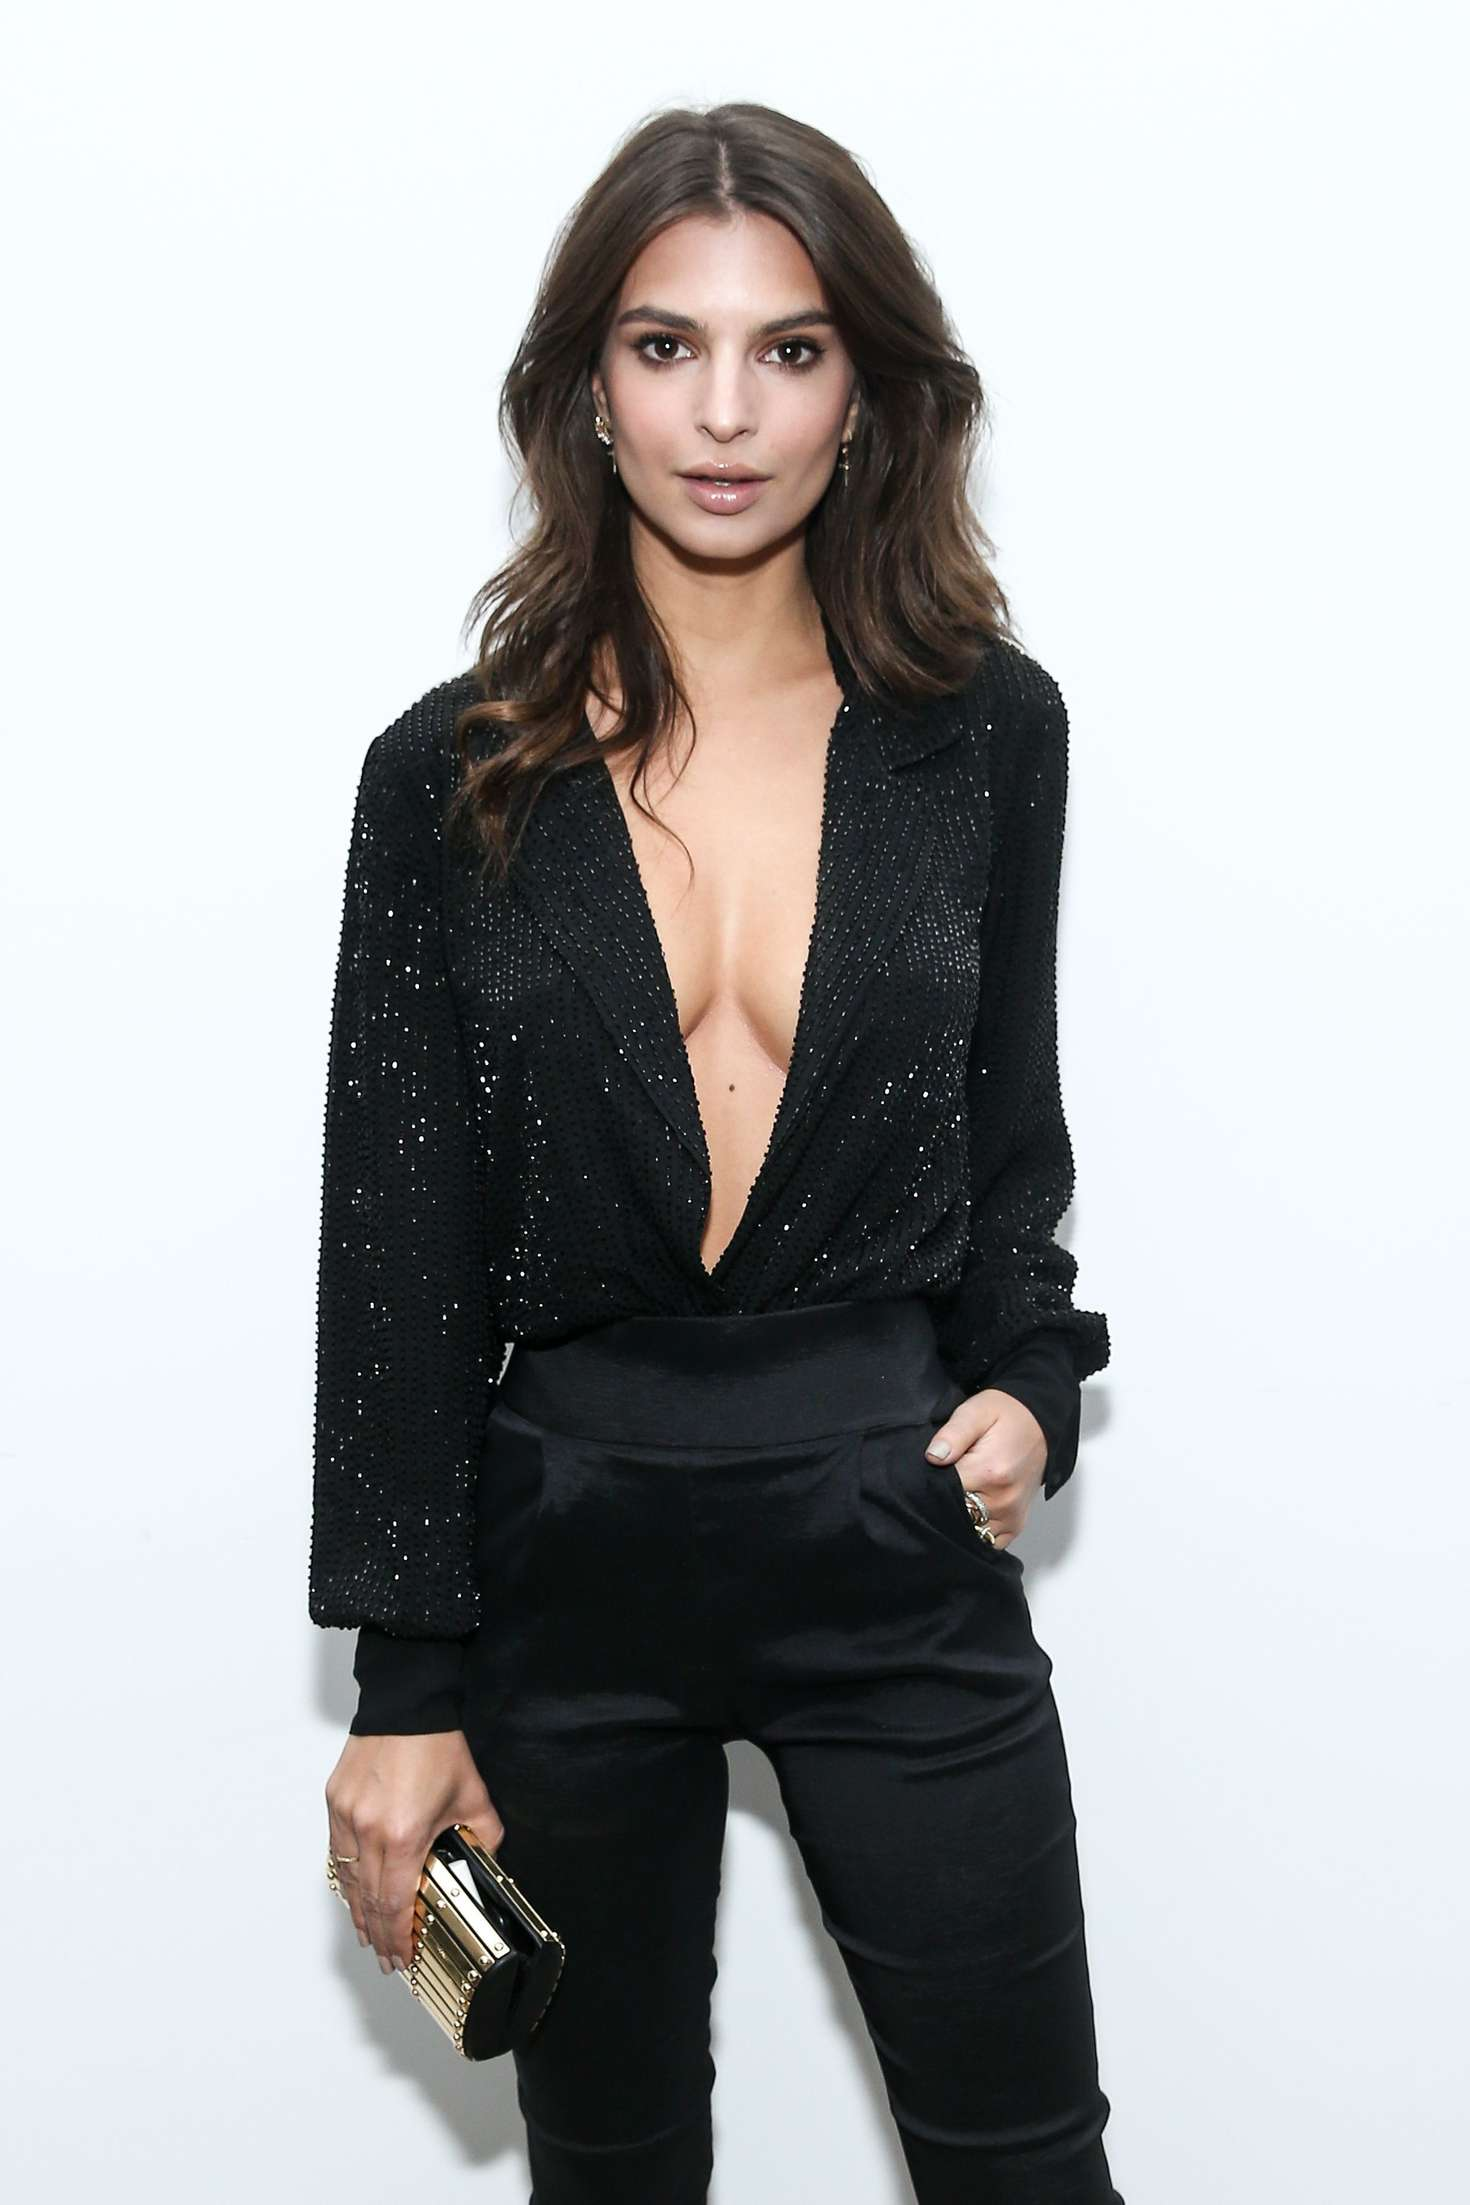 Emily Ratajkowski – Vince Camuto Holiday Dance Party in LA